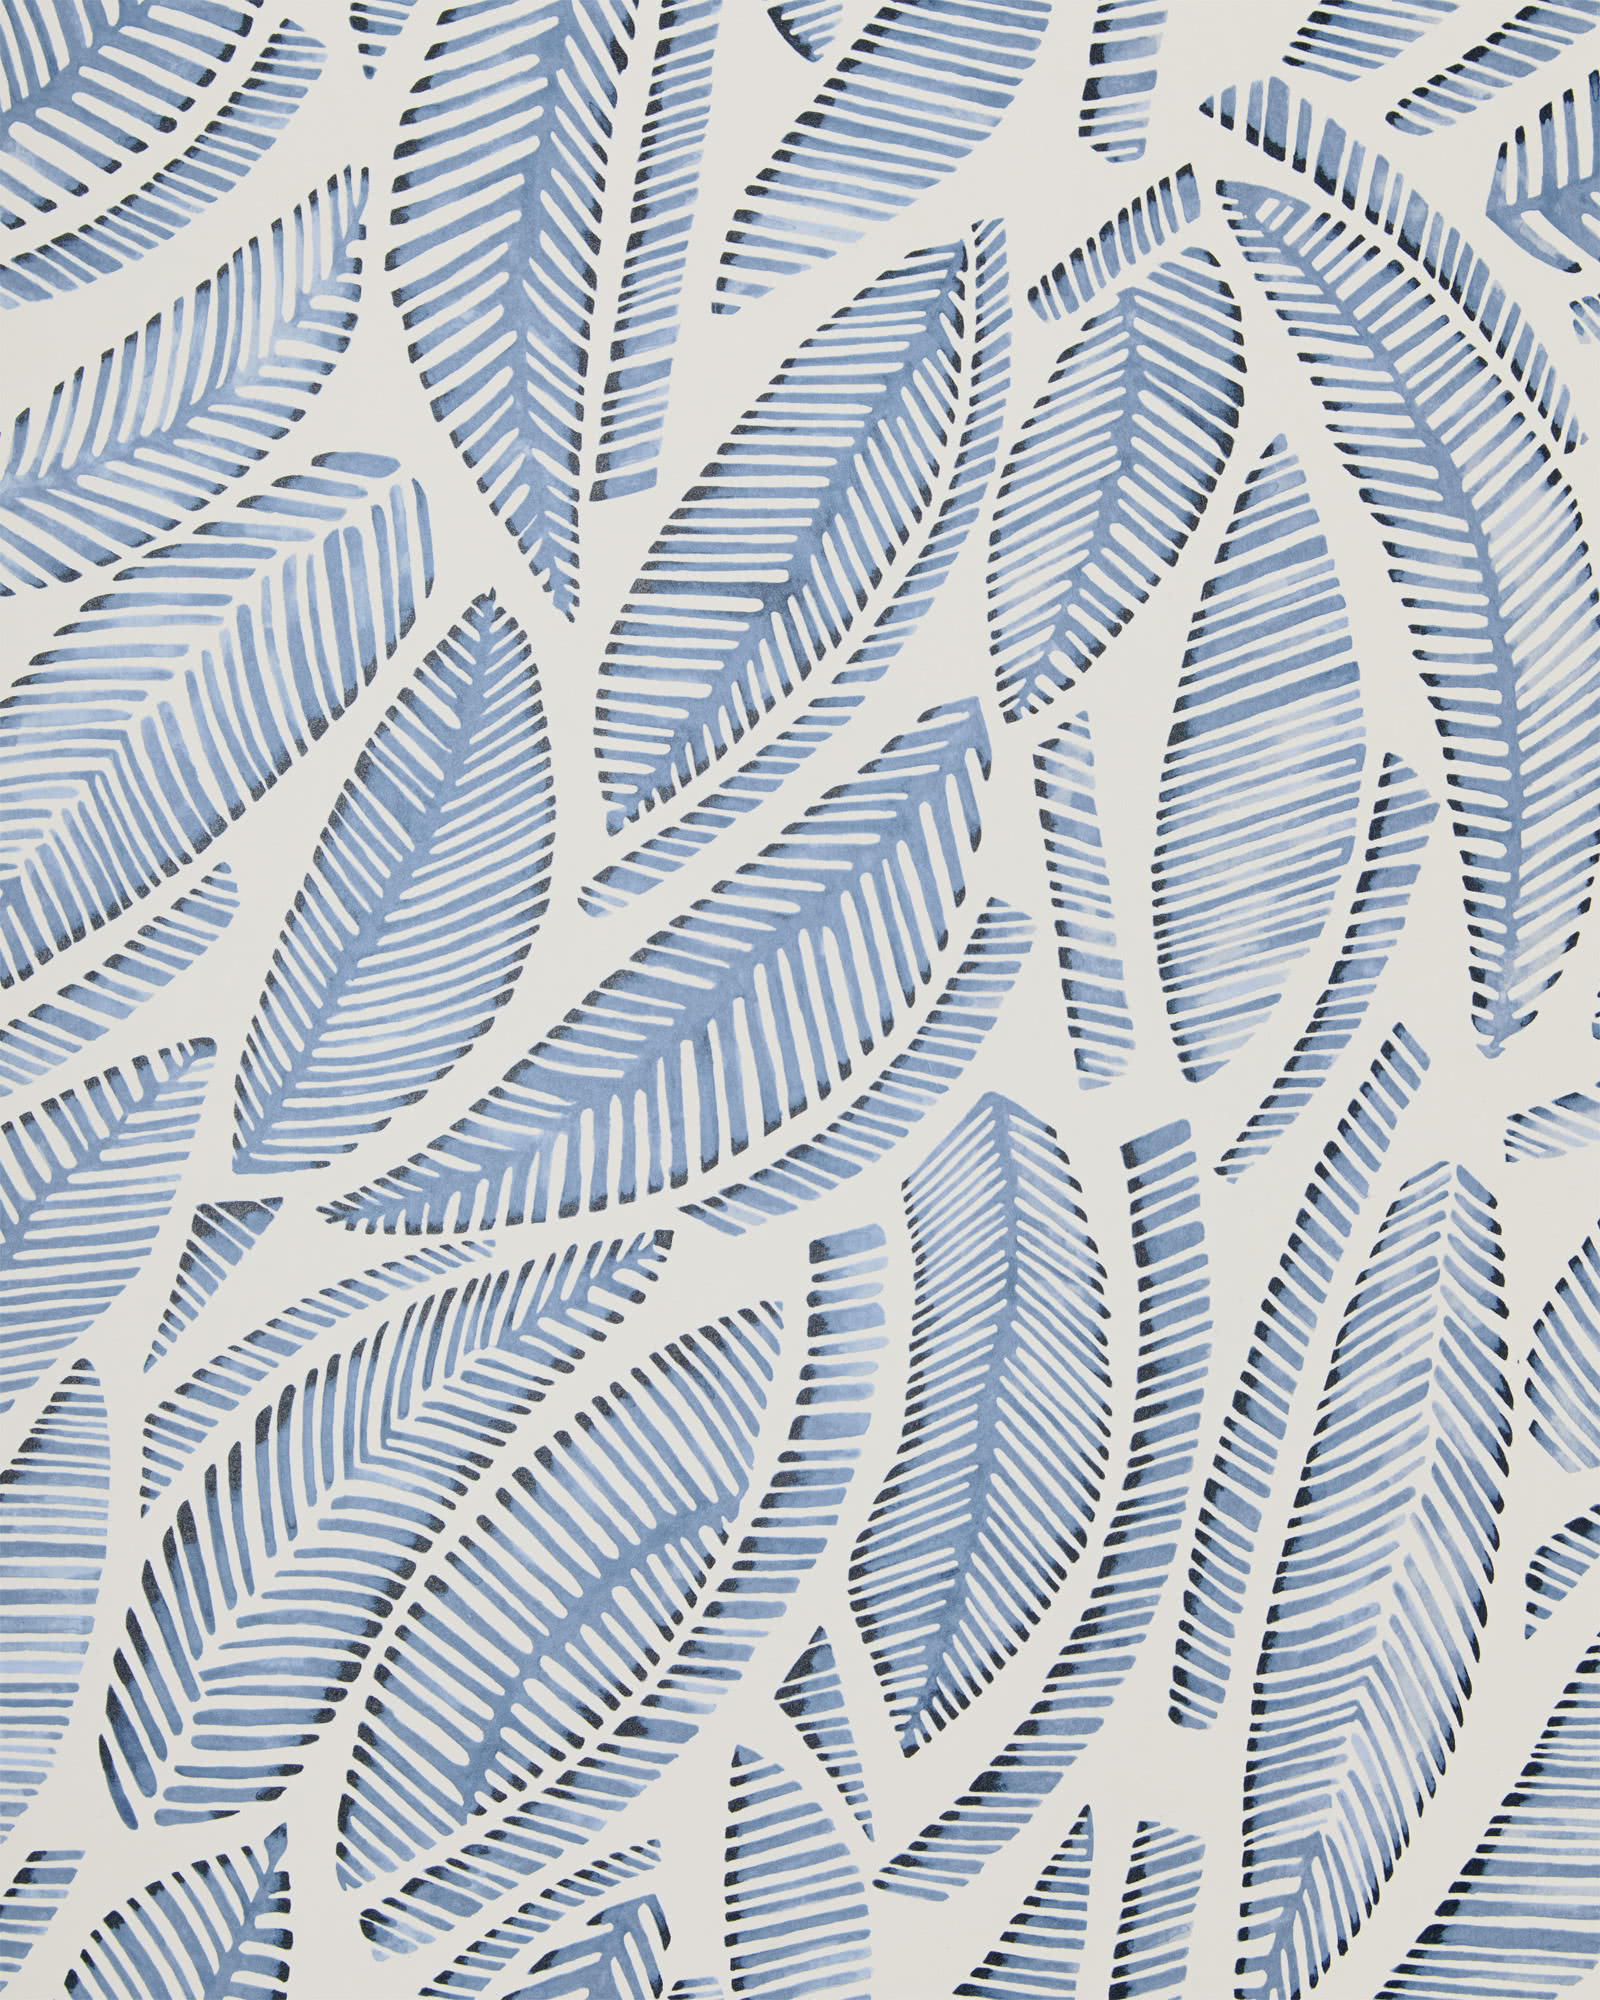 Wallpaper_Cut_Leaf_Navy_Full_MV_0565_Crop_BASE.jpg